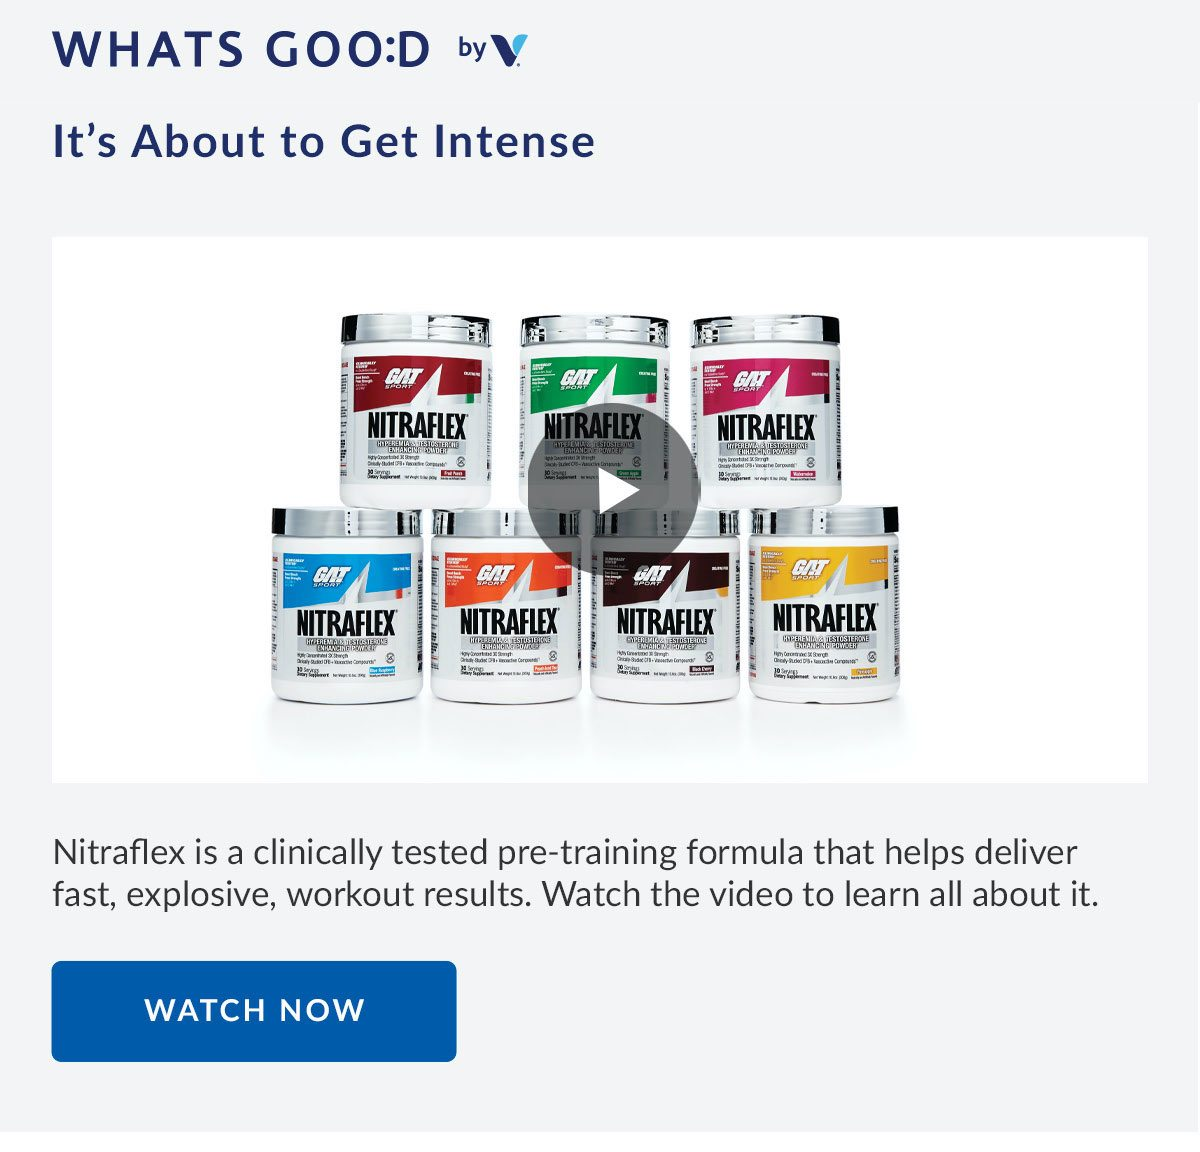 WHATS GOO:D by Vitamin Shoppe | It's About to Get Intense | Nitraflex is a clinically tested pre-training formula that helps deliver fast, explosive, workout results. Watch the video to learn all about it. | WATCH NOW